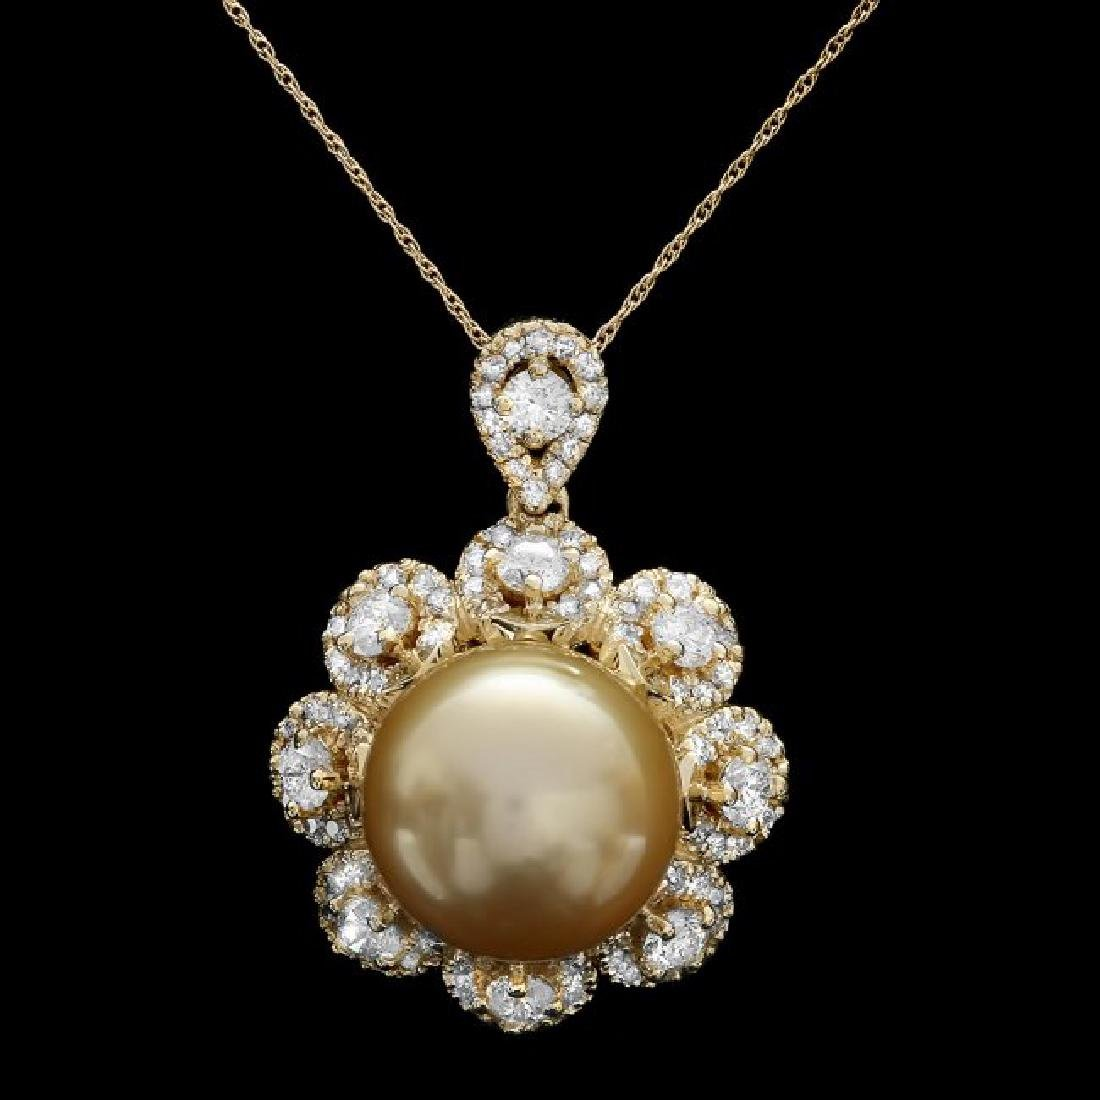 14k Yellow Gold 15mm Pearl 3.00ct Diamond Pendant - 2